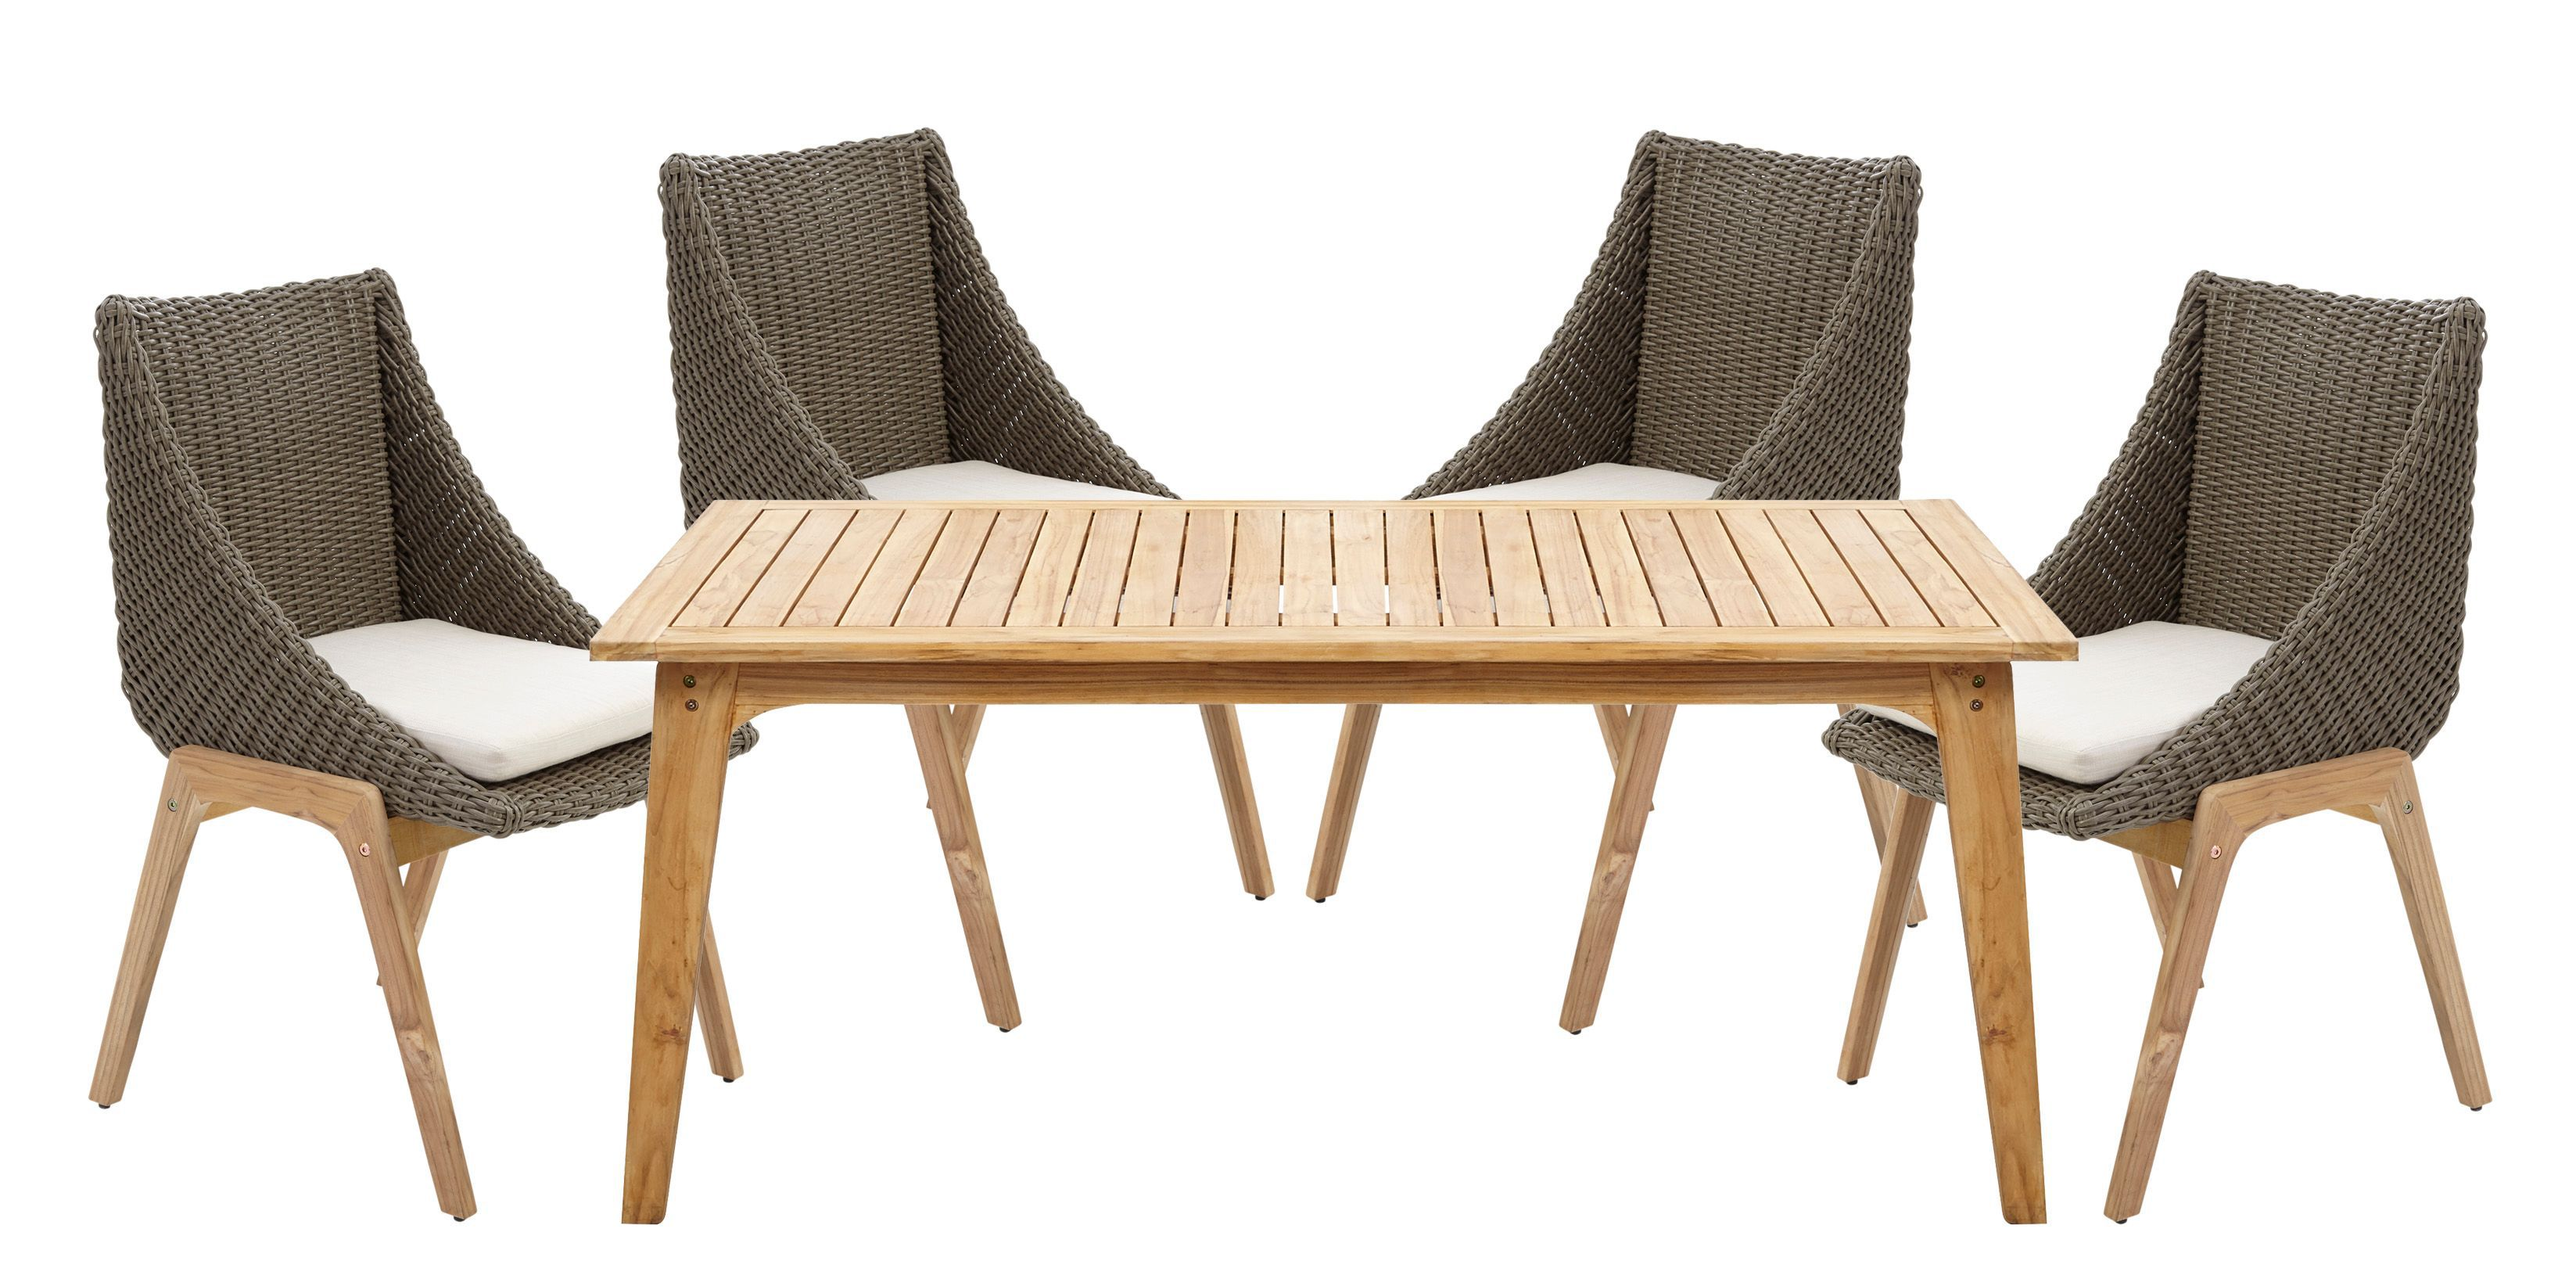 Retro Rattan Effect 4 Seater Dining Set